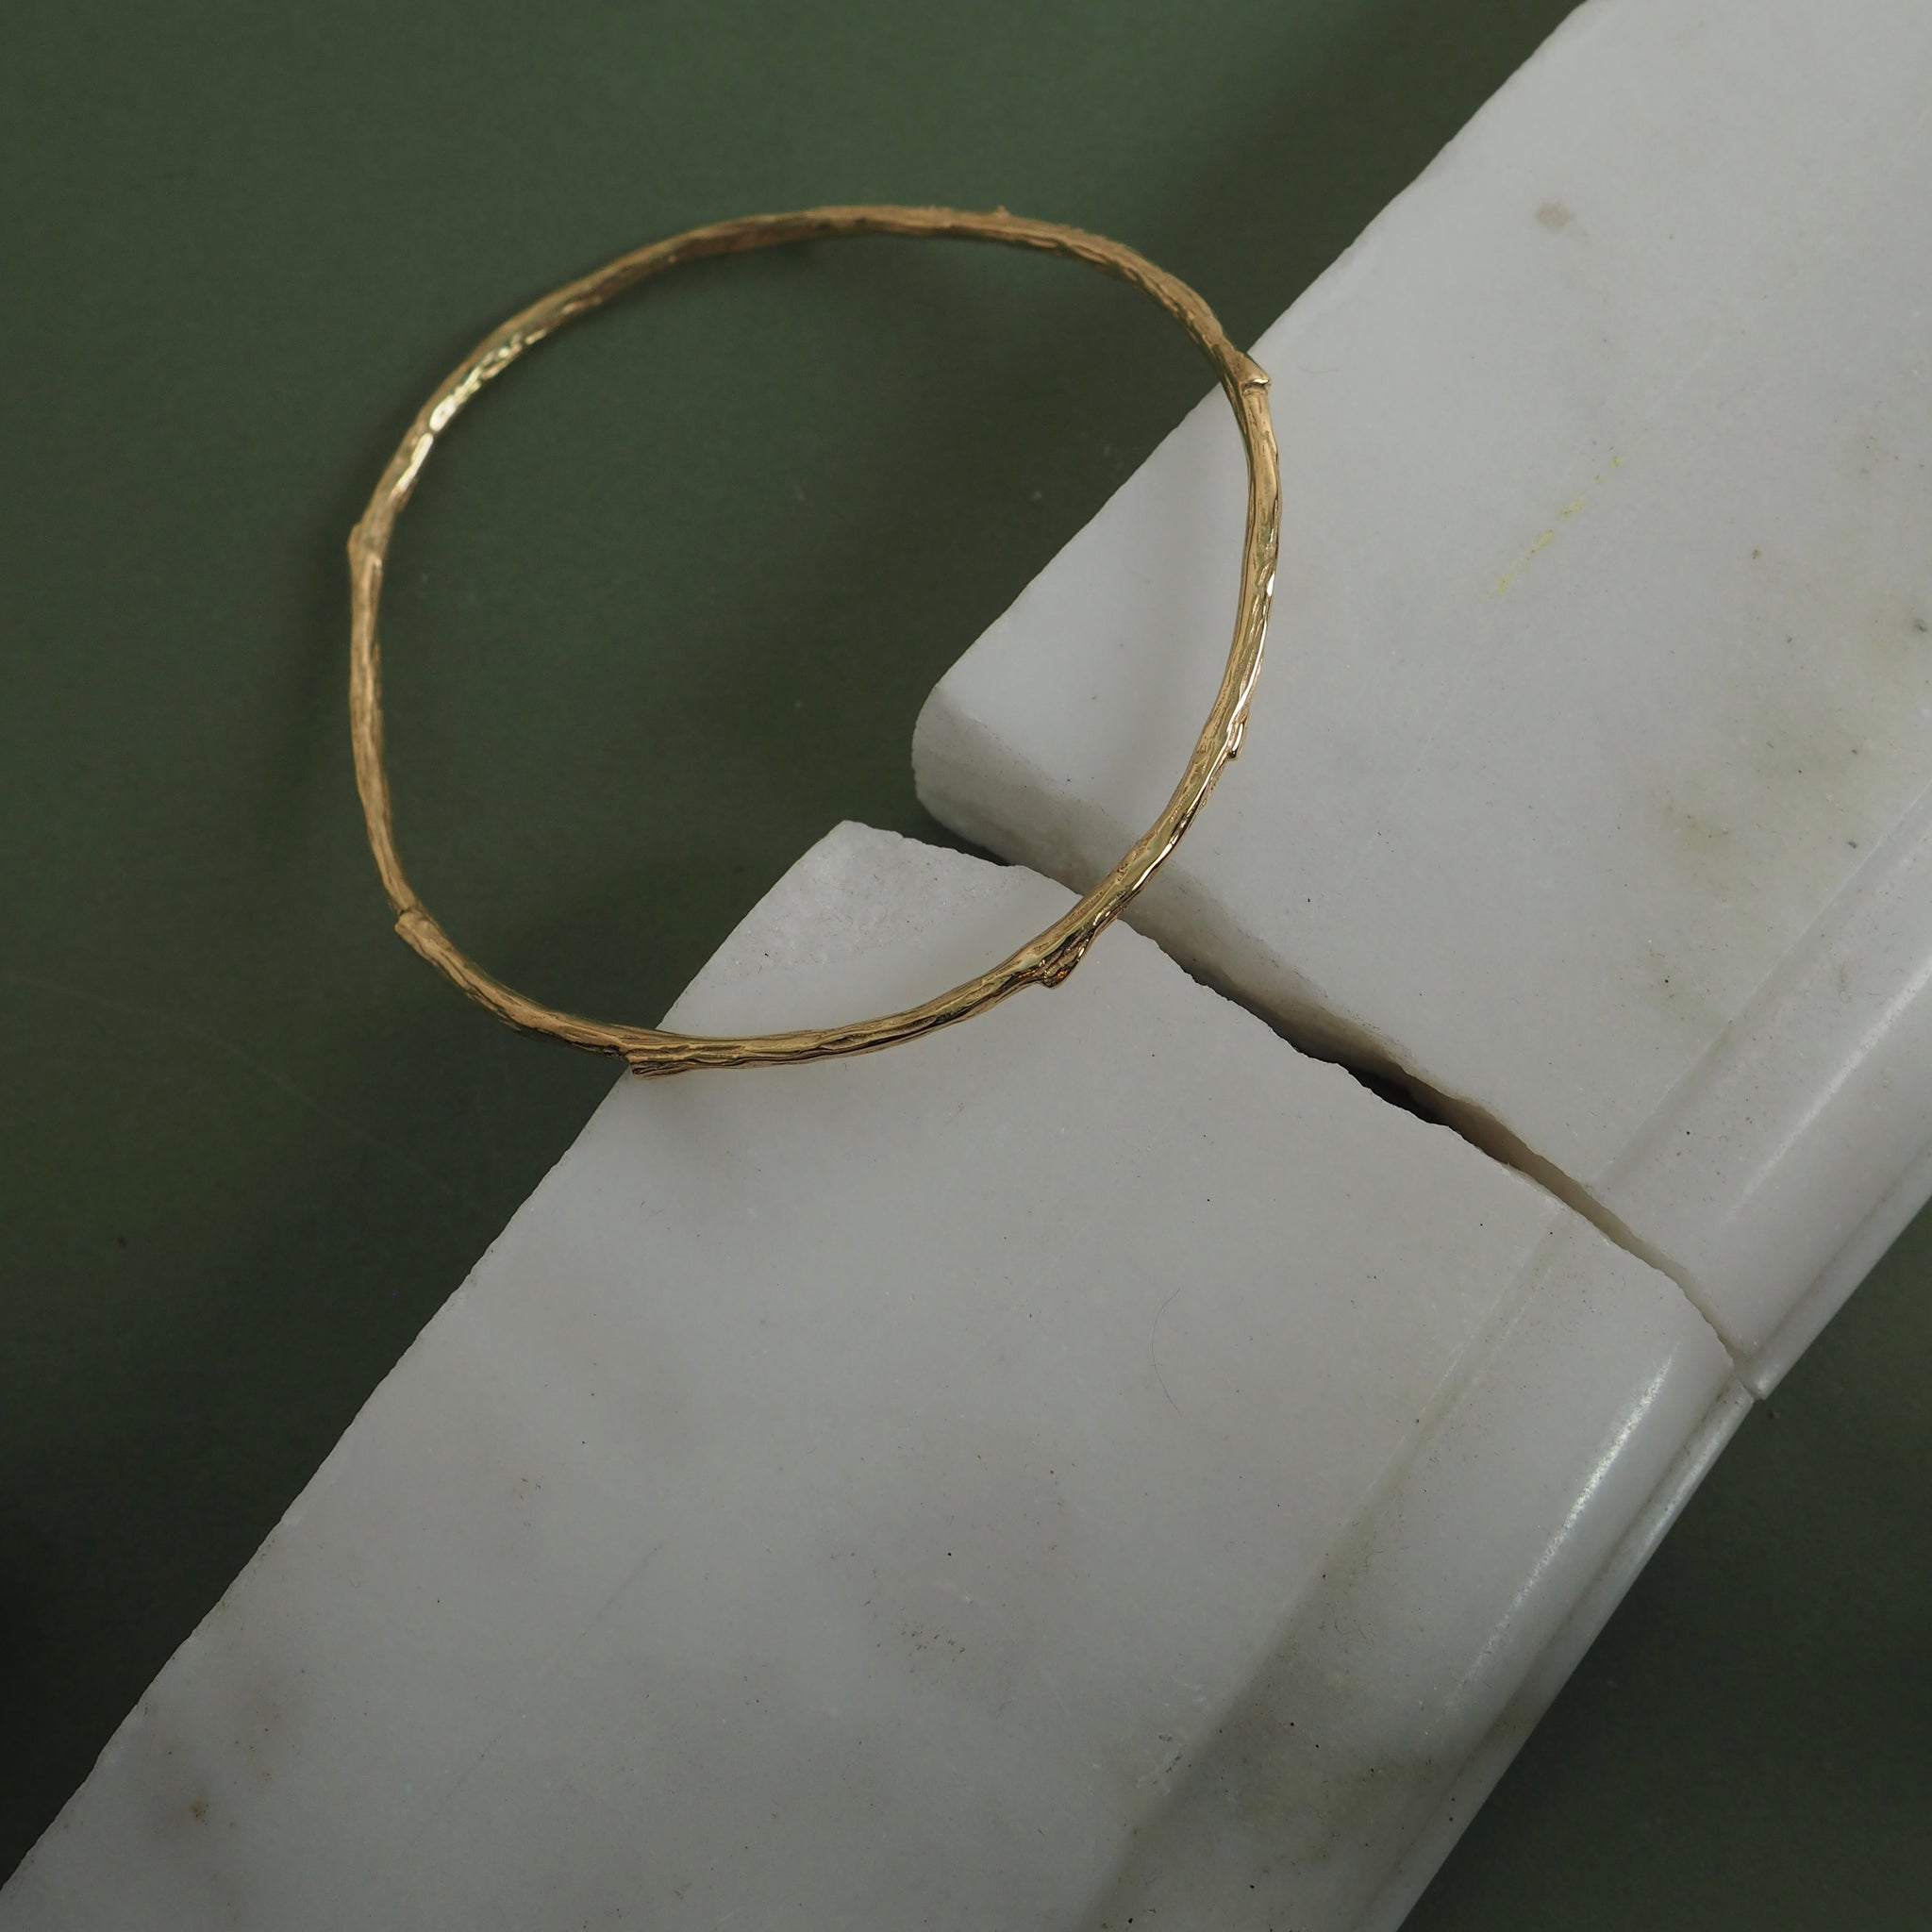 9ct Gold Twig Bangle by Yasmin Everley